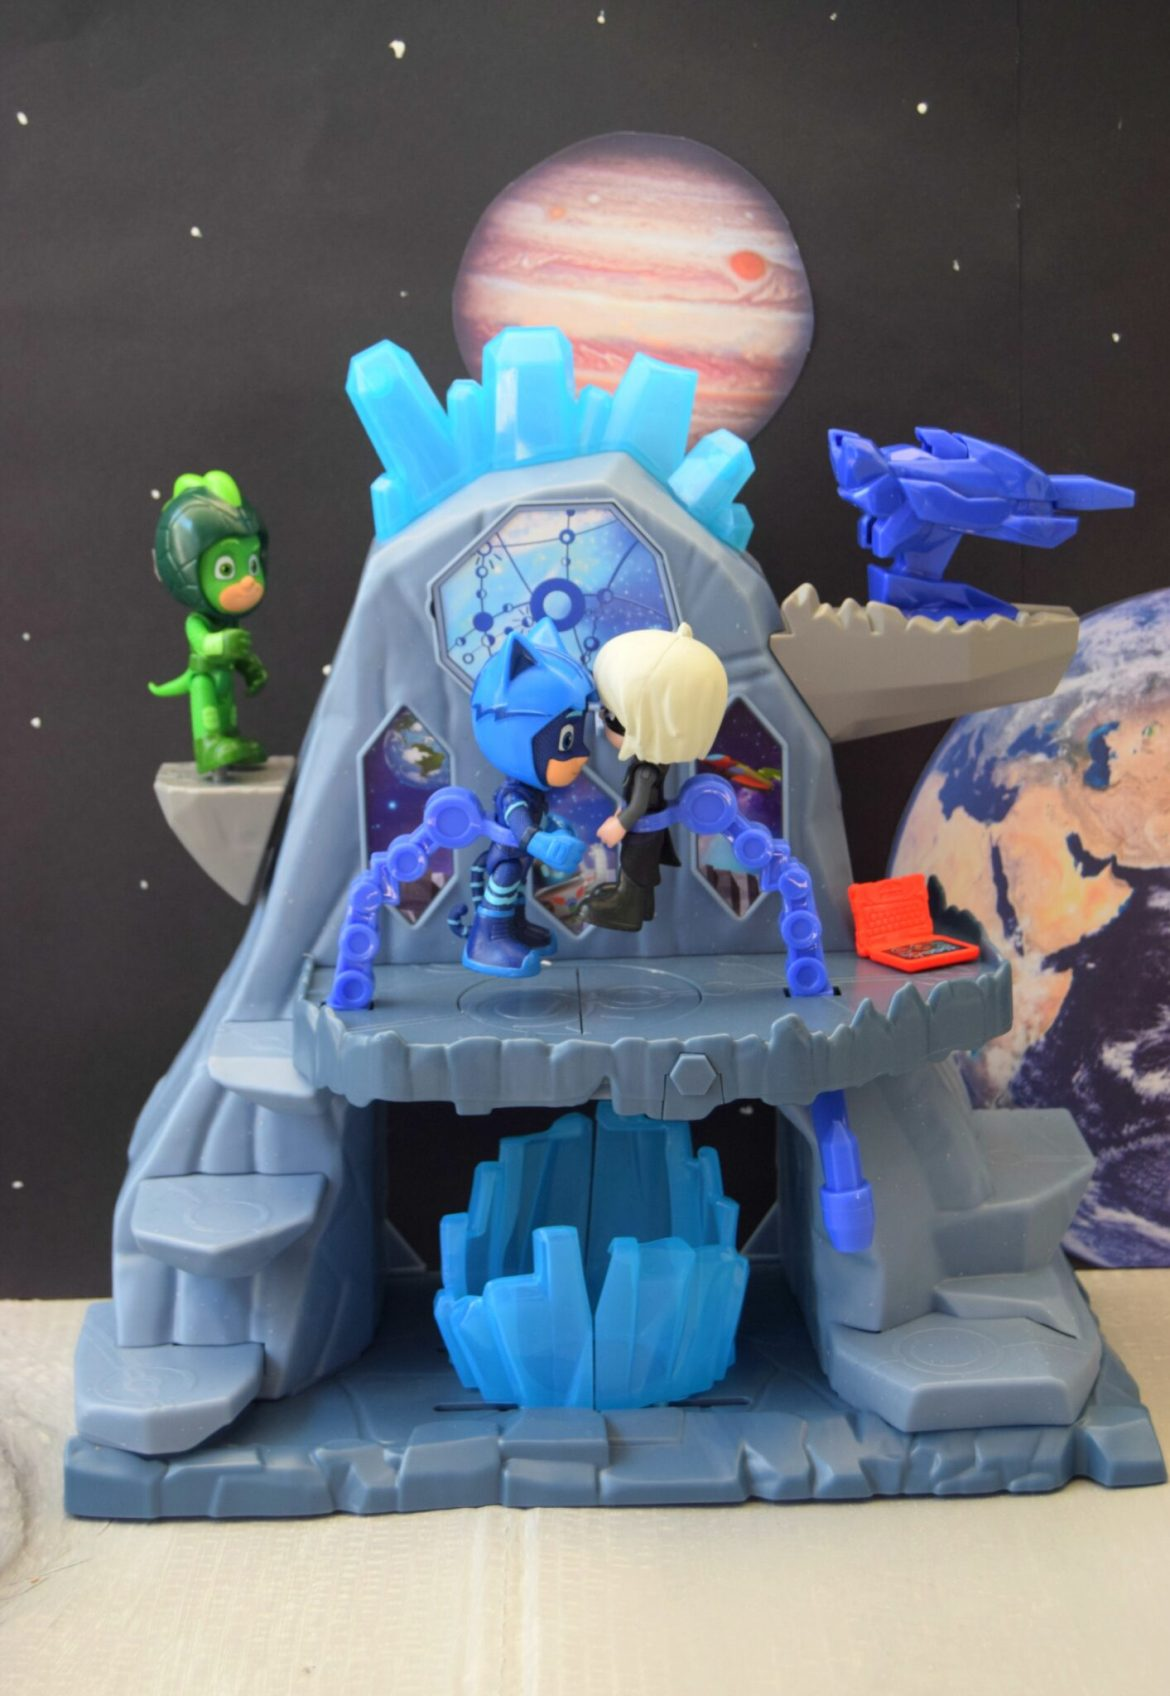 The Super Moon Fortress Playset with our PJ Masks Craft space background.